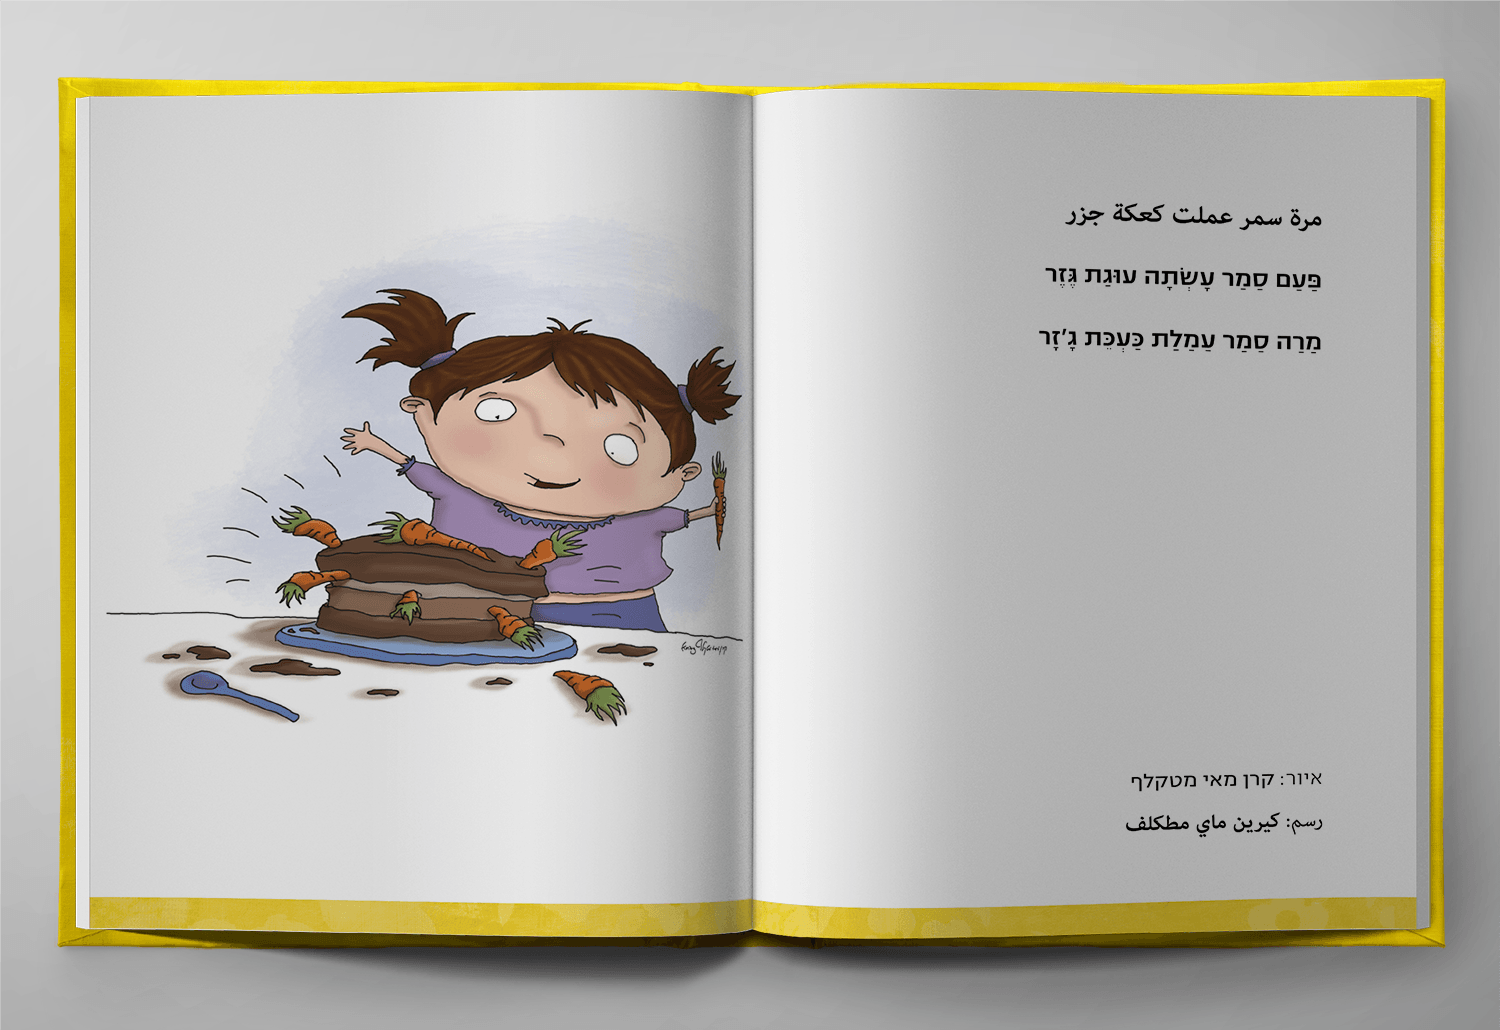 https://bigeyes.co.il/wp-content/uploads/2019/07/shtuzim-book-4.png